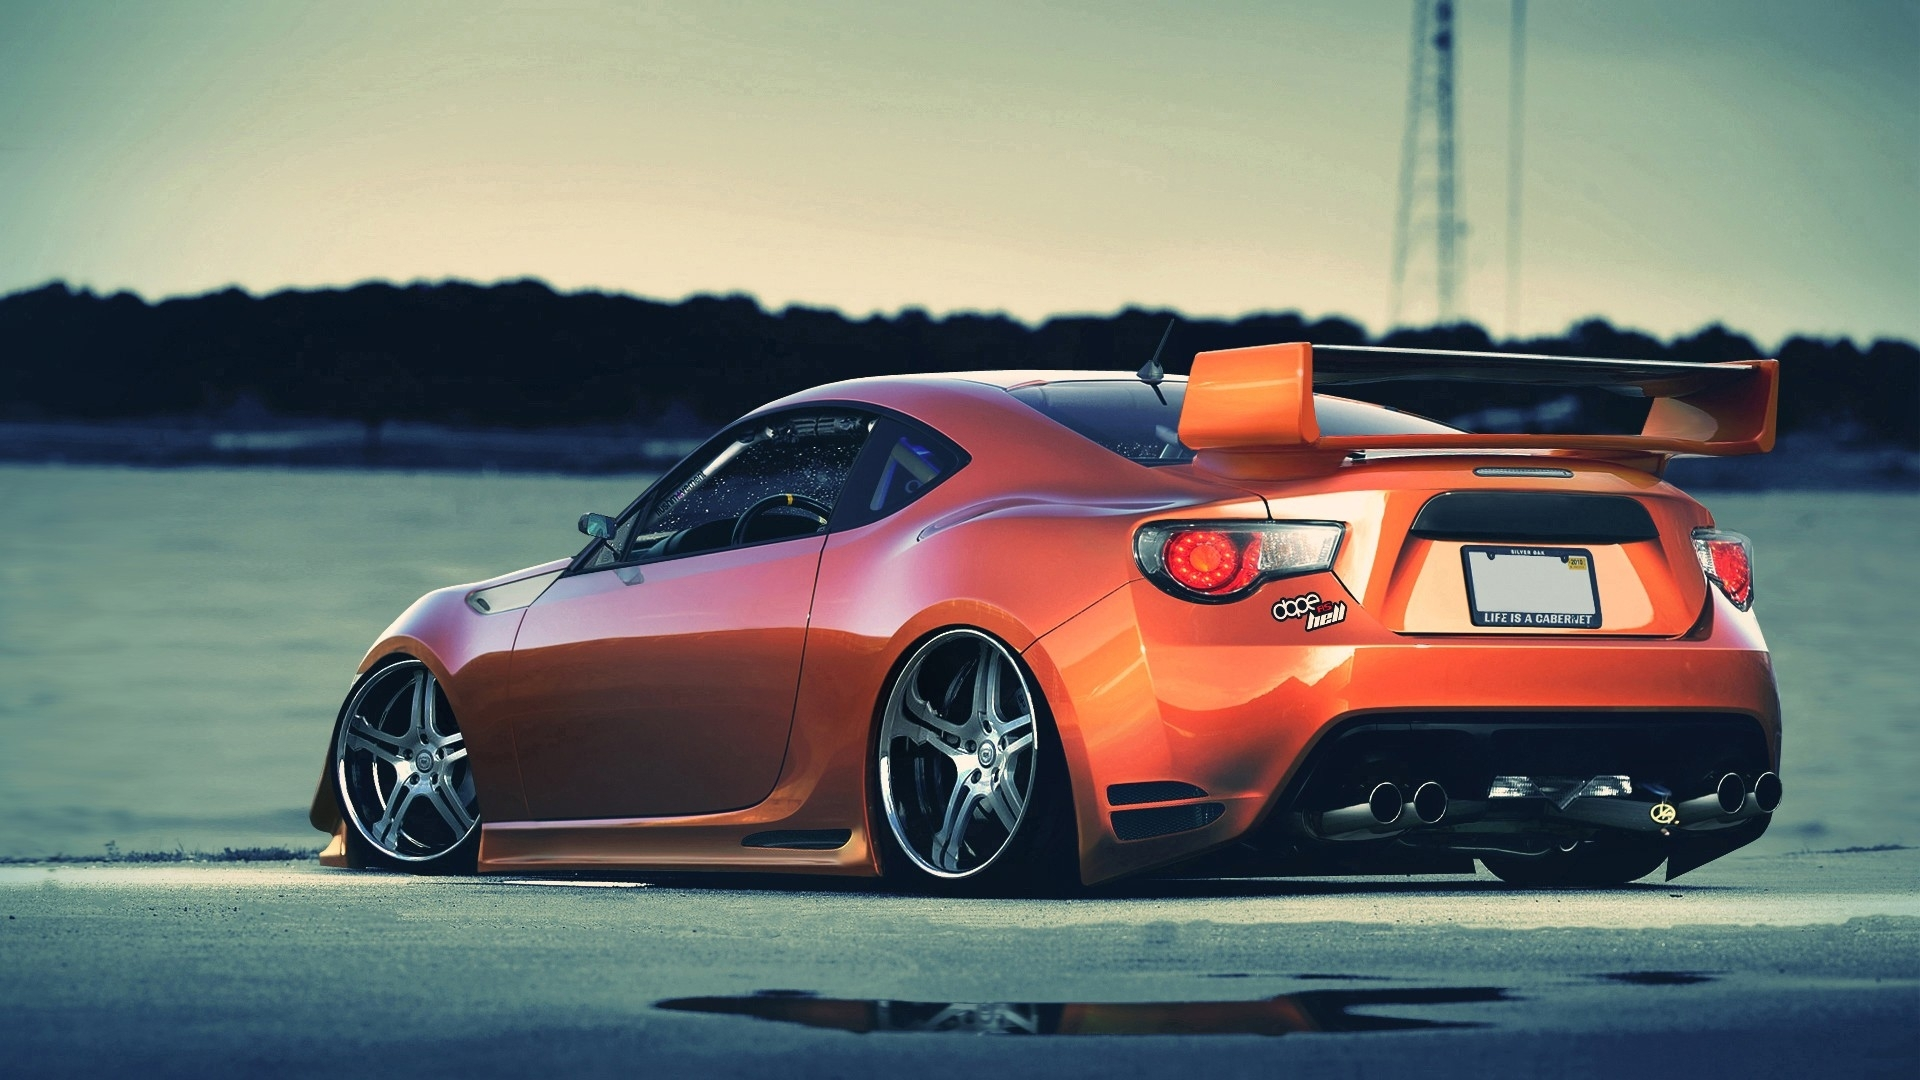 Cars tuning toyota gt86 wallpaper | 1920x1080 | 30260 ...